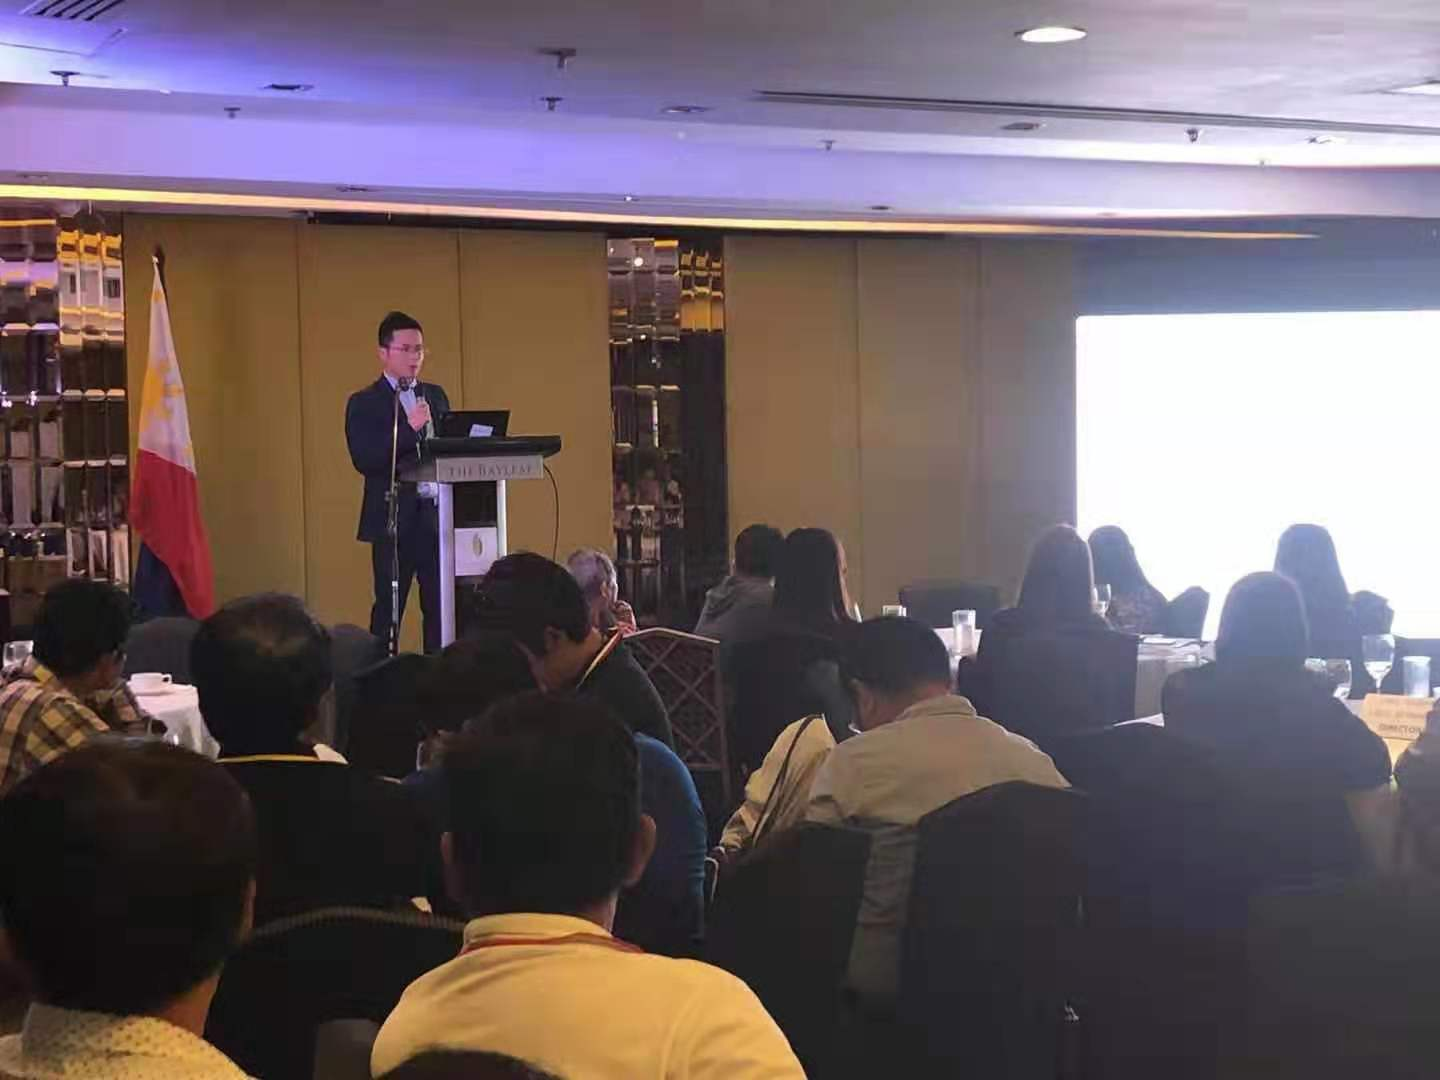 20190318054217108 - Hi-Target Participated in RASA Technology Forum 2019